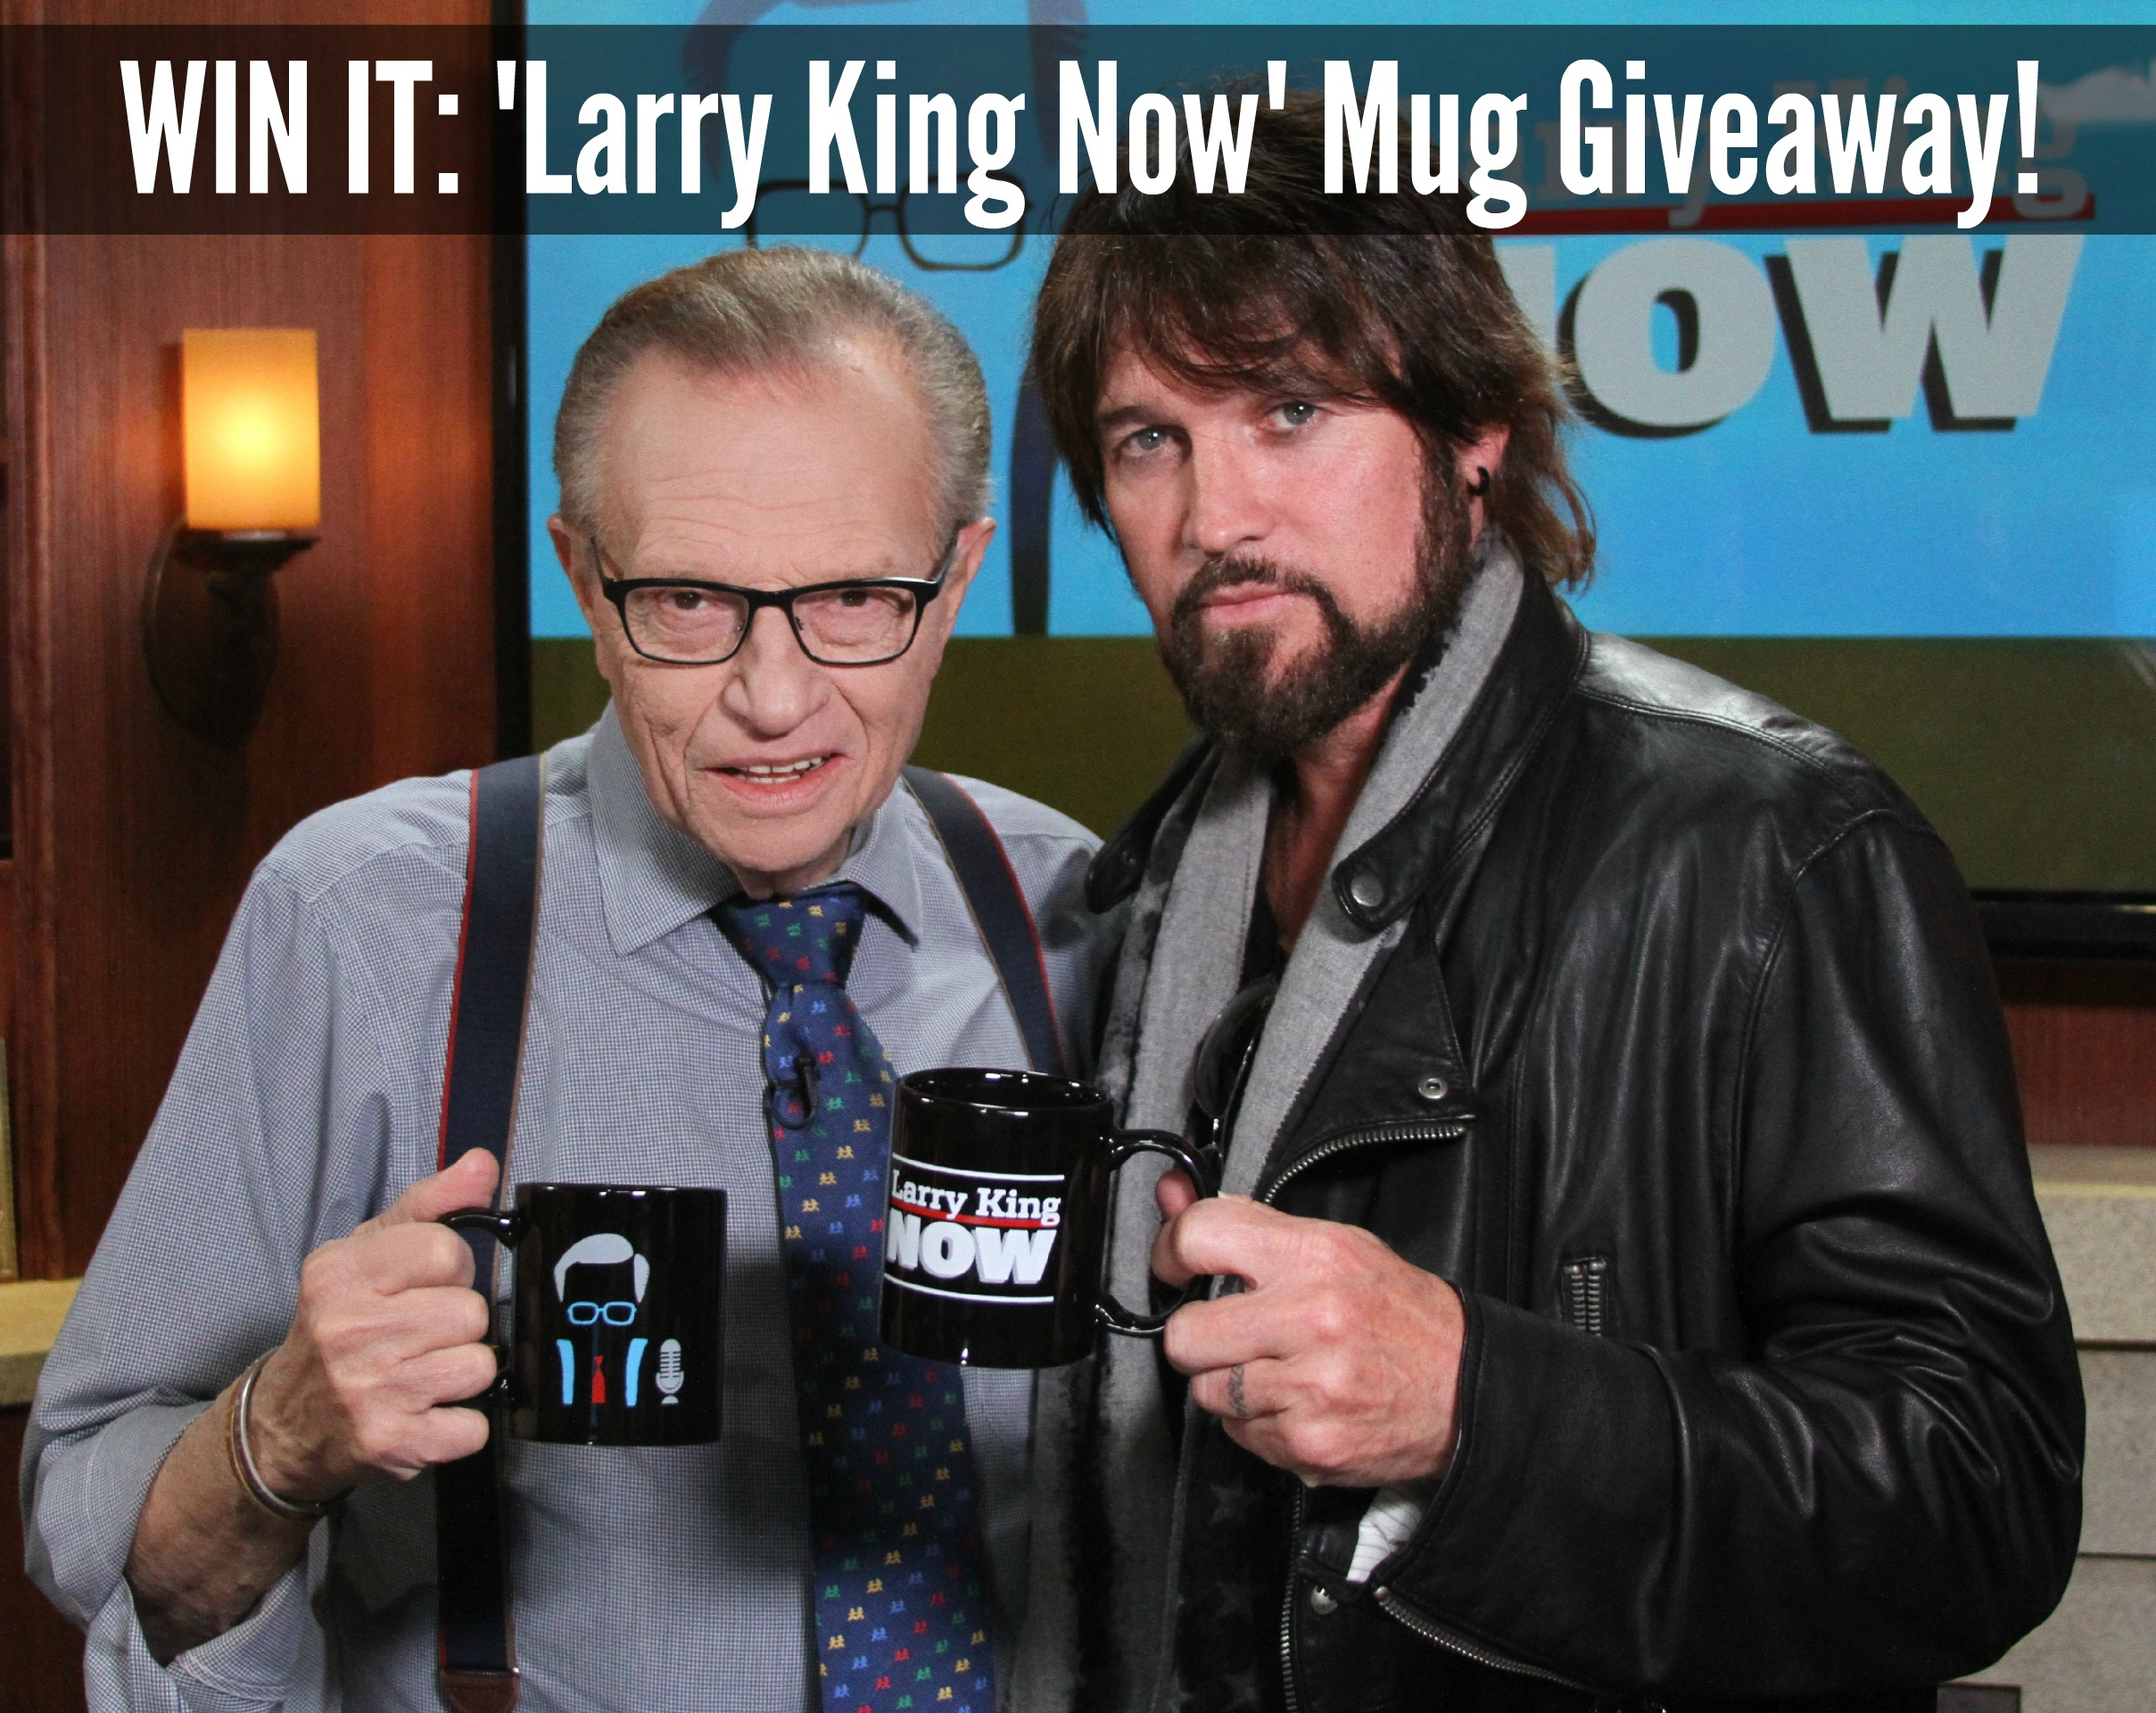 'Larry King Now' Mug Giveaway